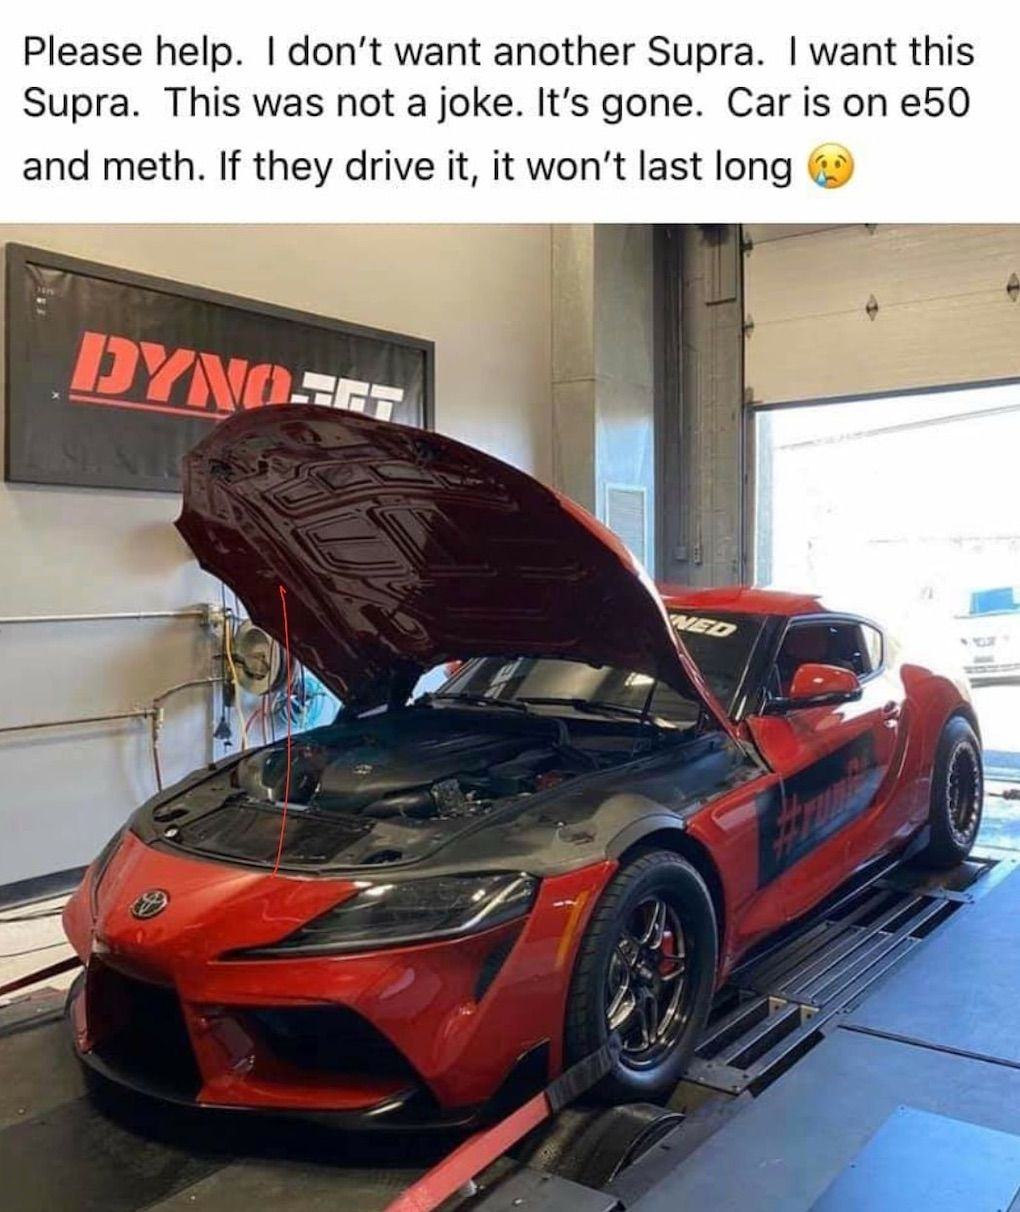 "<img src=""supra-2.jpg"" alt=""Modified 2020 Toyota Supra that was stolen and recovered"">"